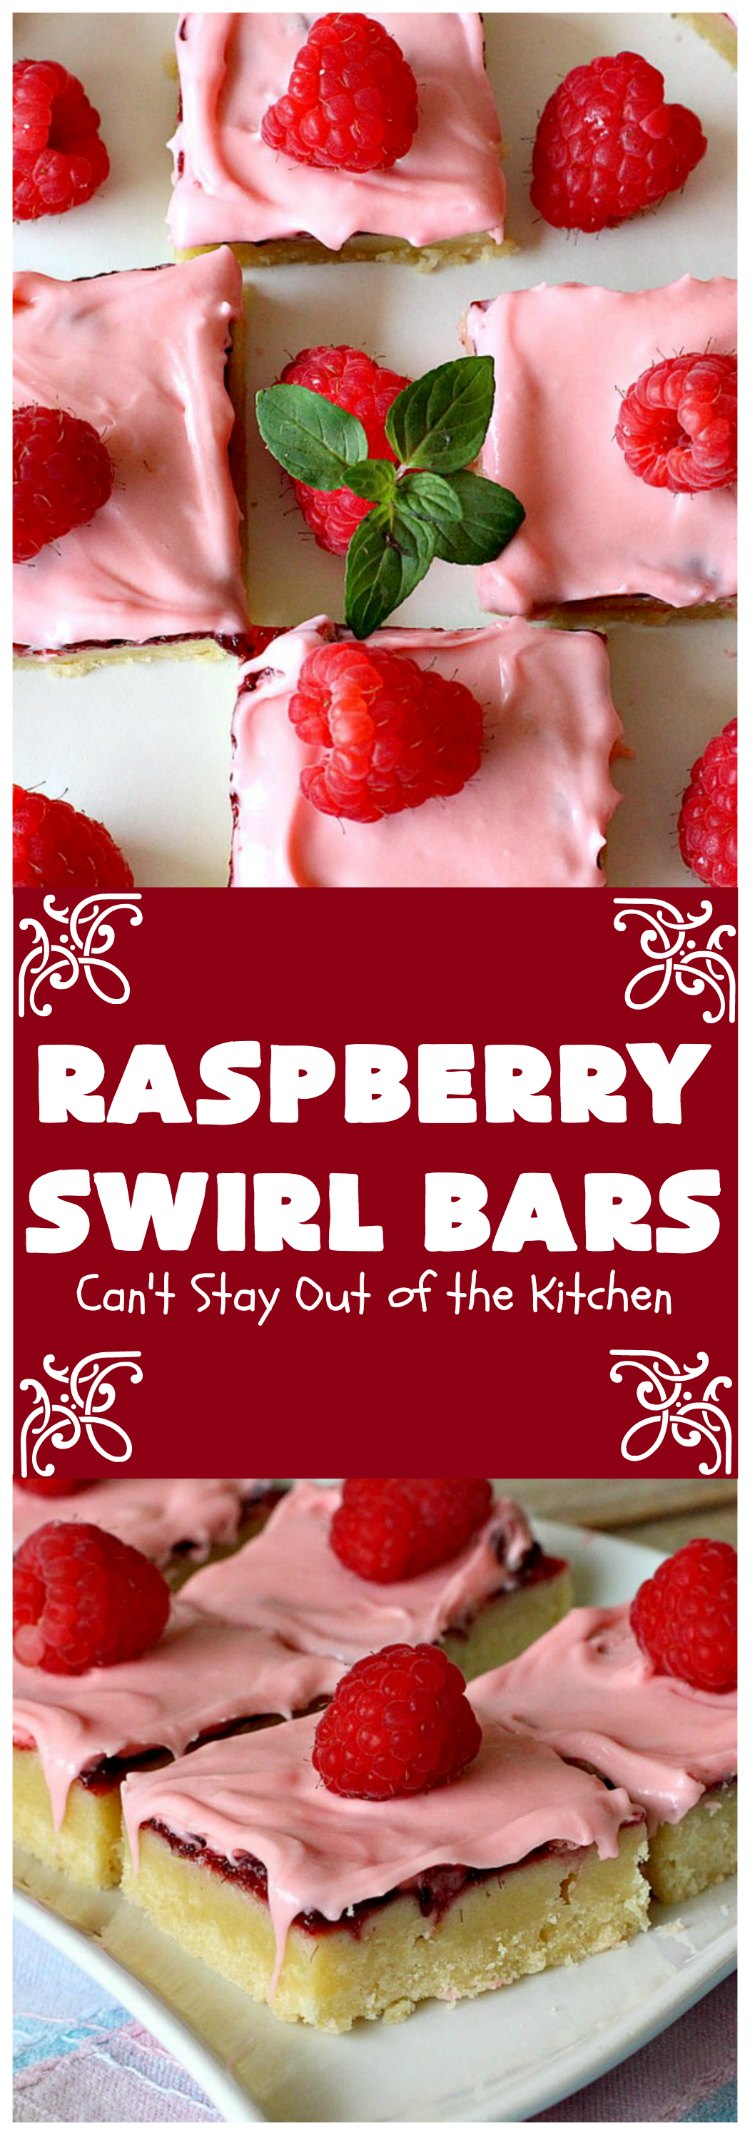 Raspberry Swirl Bars   Can't Stay Out of the Kitchen   these luscious #cookies contain #RaspberryPieFilling & have a #Raspberry #CreamCheese icing. Great #dessert for #holidays or company. #tailgating #RaspberryDessert #RaspberrySwirlBars